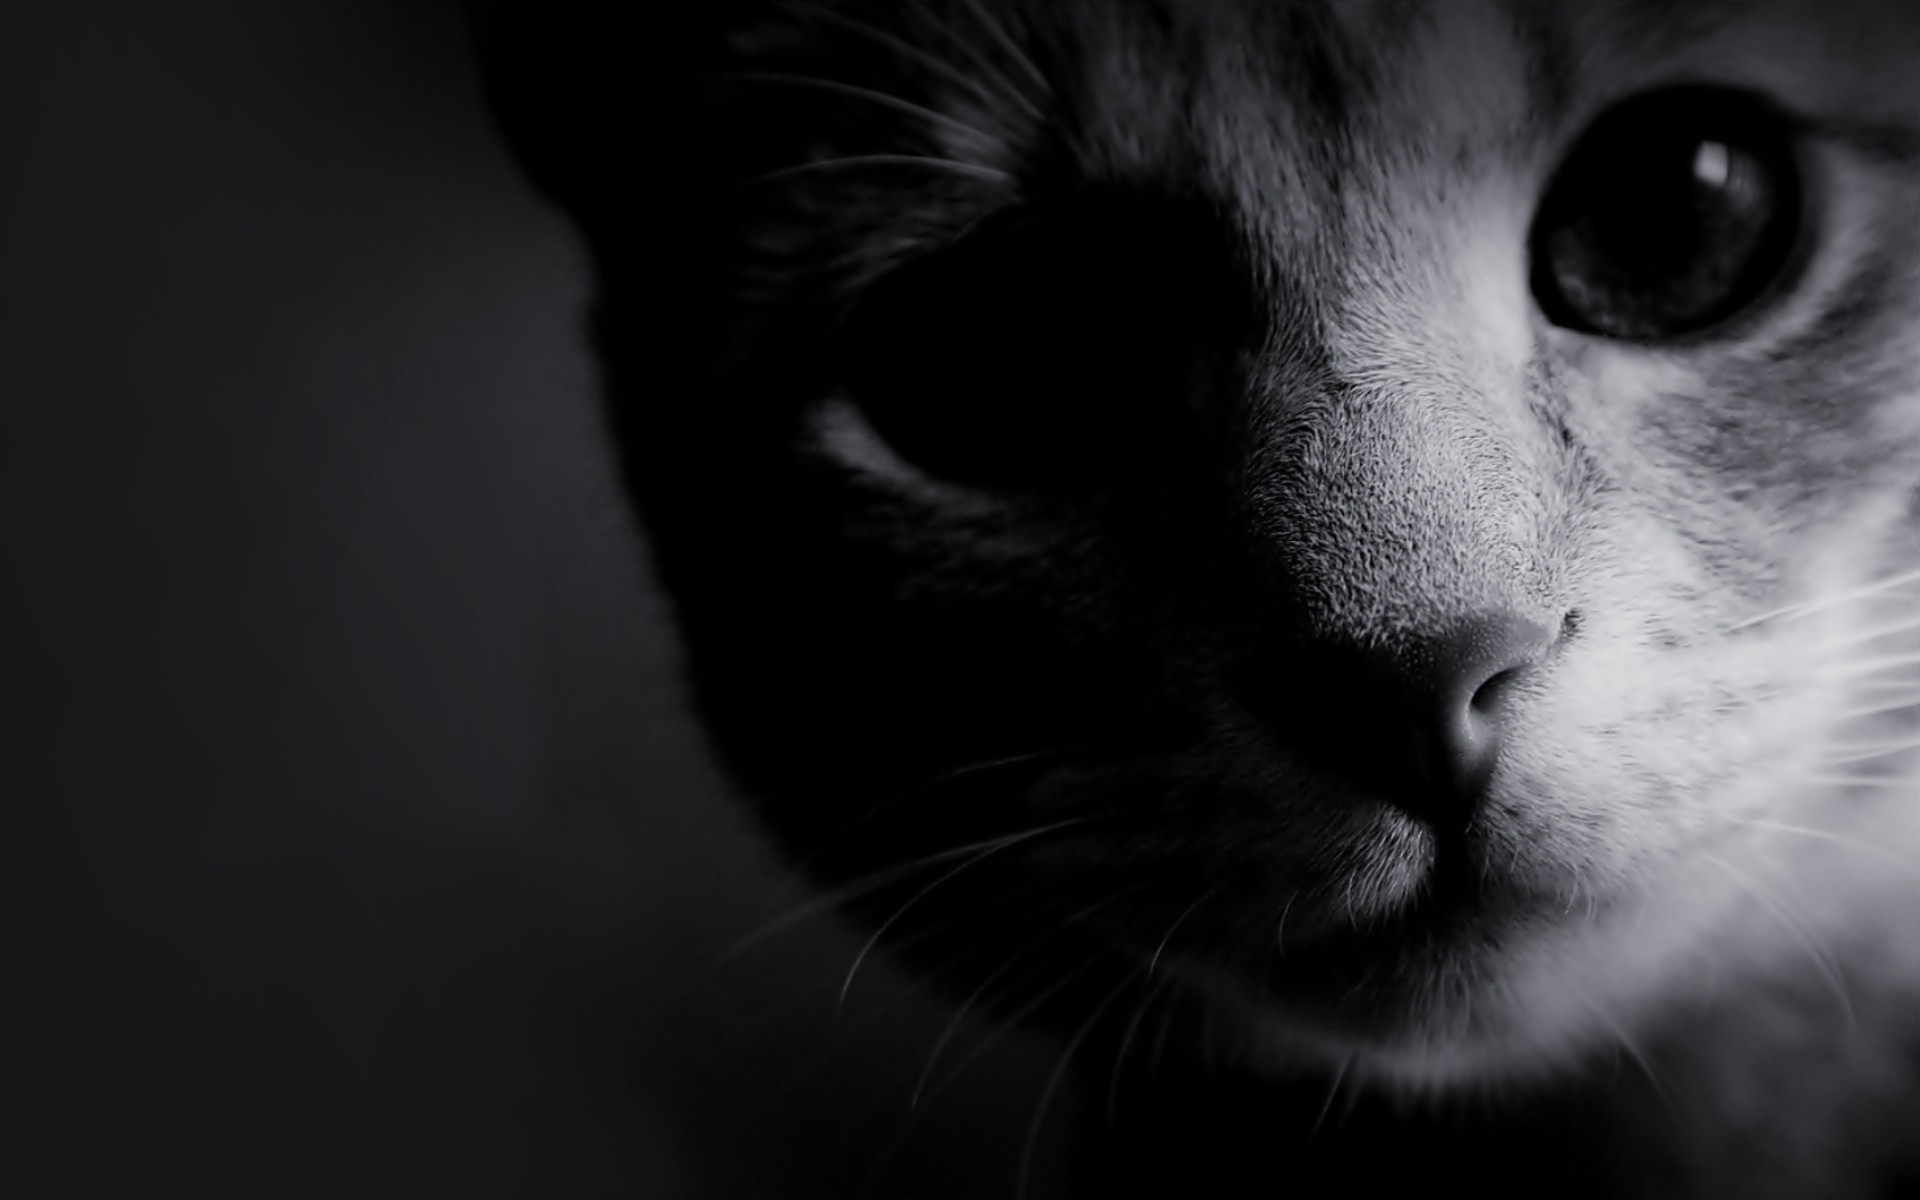 Cat Close-up Monochrome wallpapers | Cat Close-up Monochrome stock HD Wide Wallpaper for Widescreen